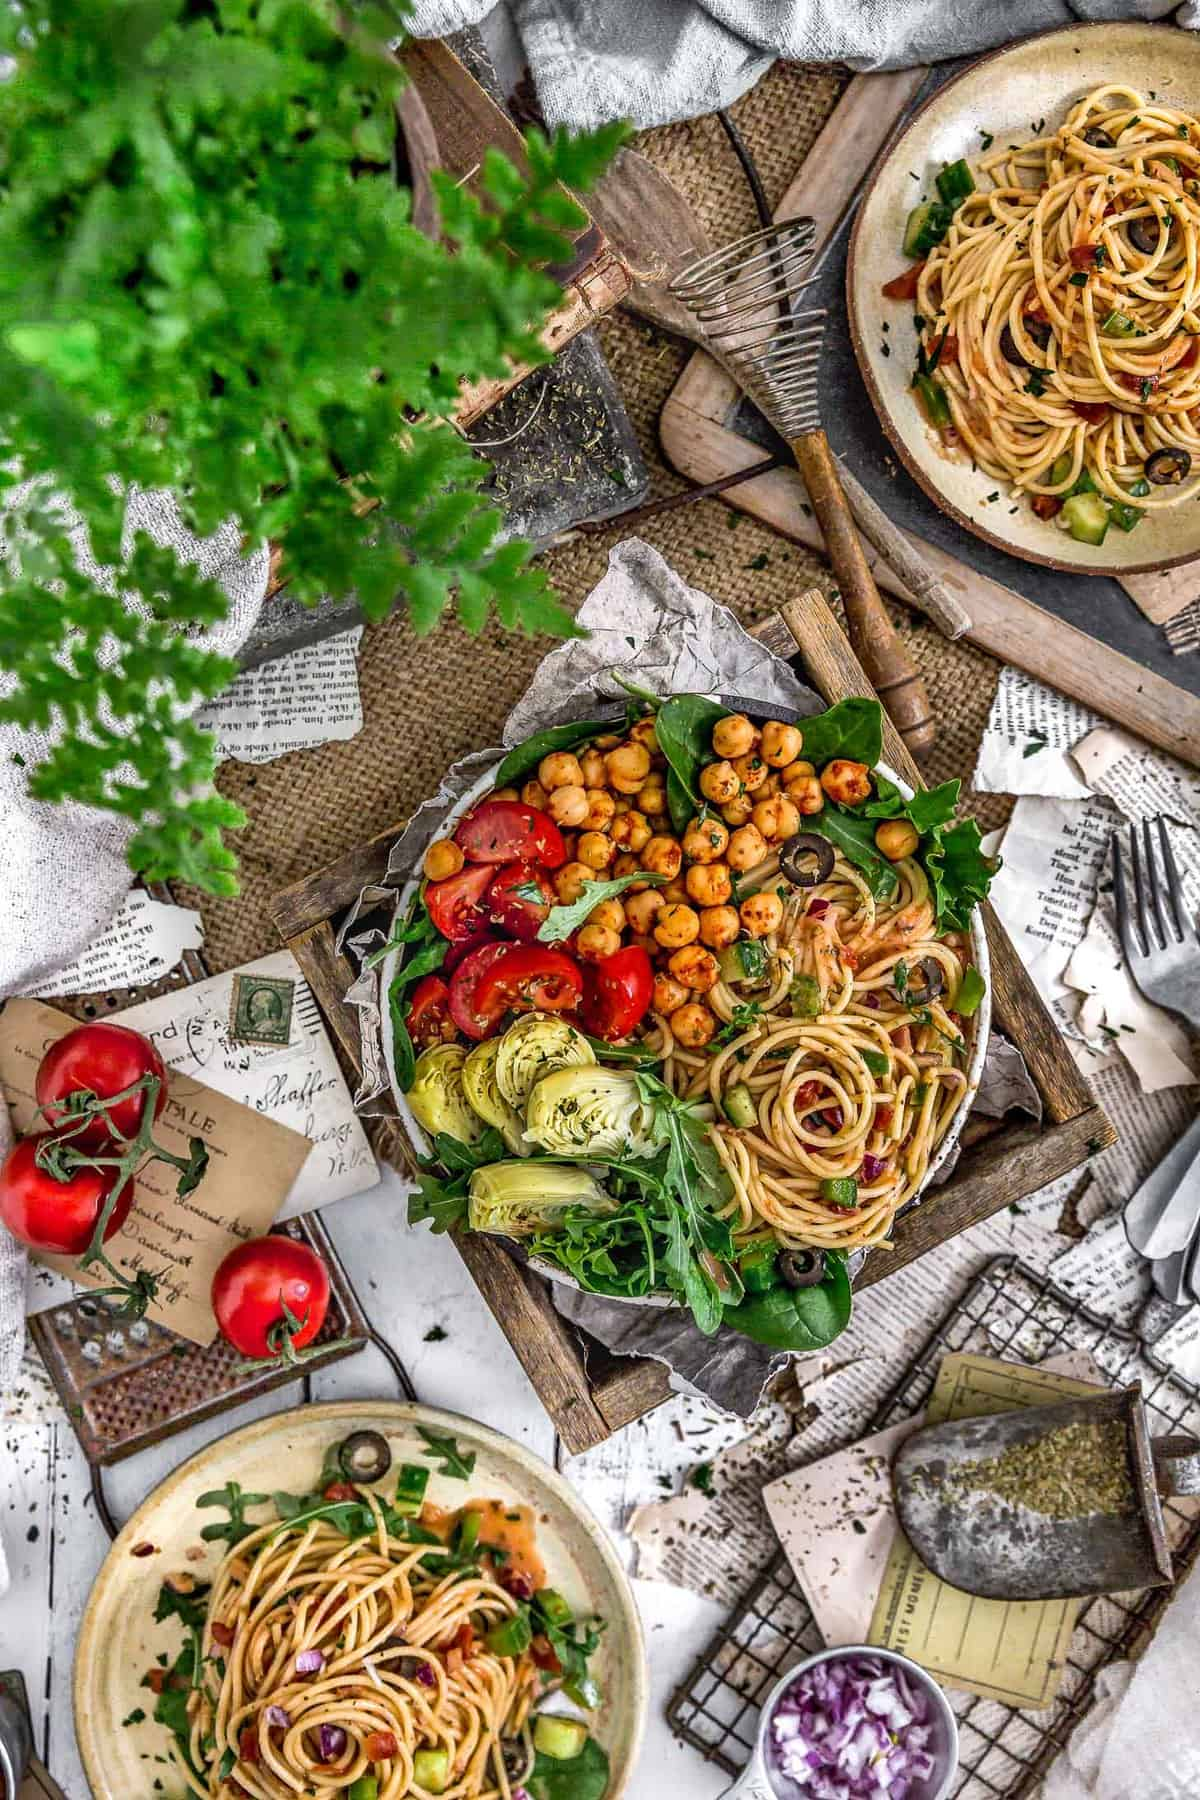 Tablescape of Healthy Italian Spaghetti Salad